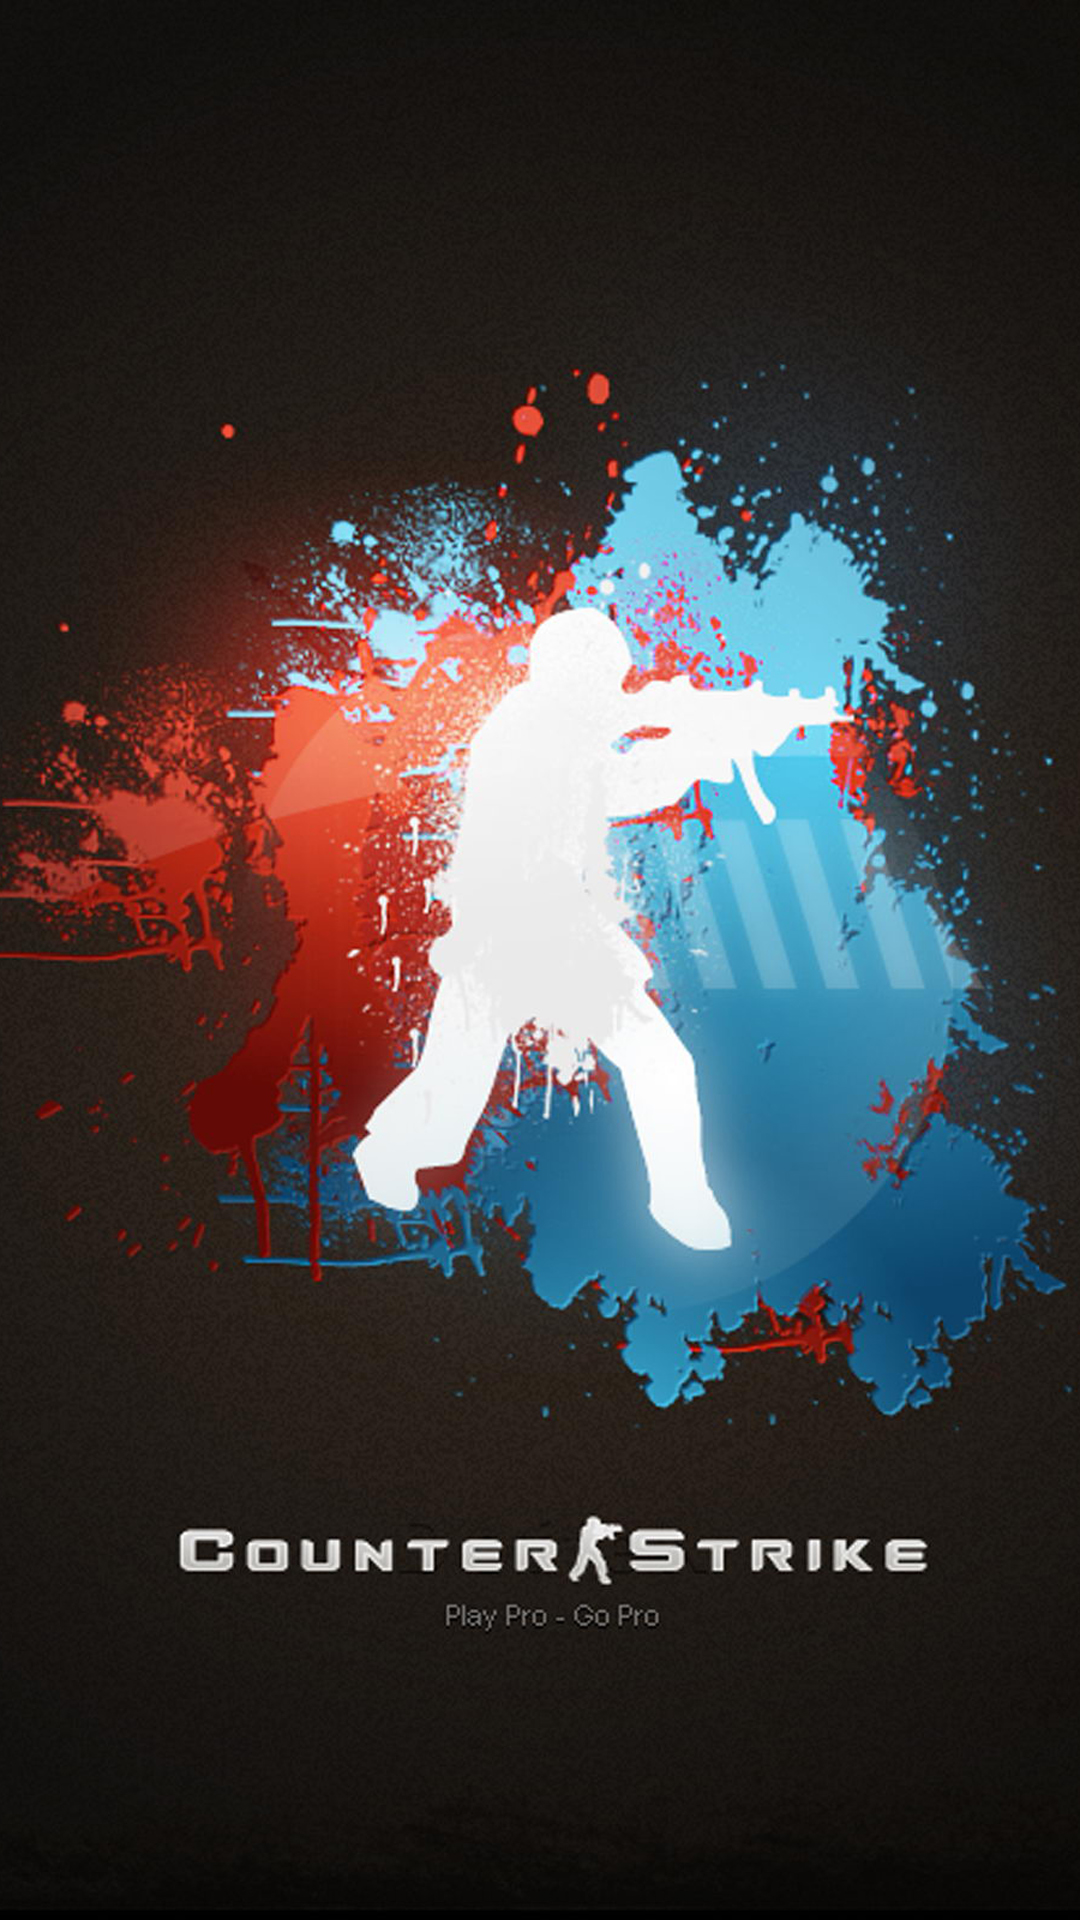 3d Wallpaper For Htc One M8 Counter Strike Pro Best Htc One Wallpapers